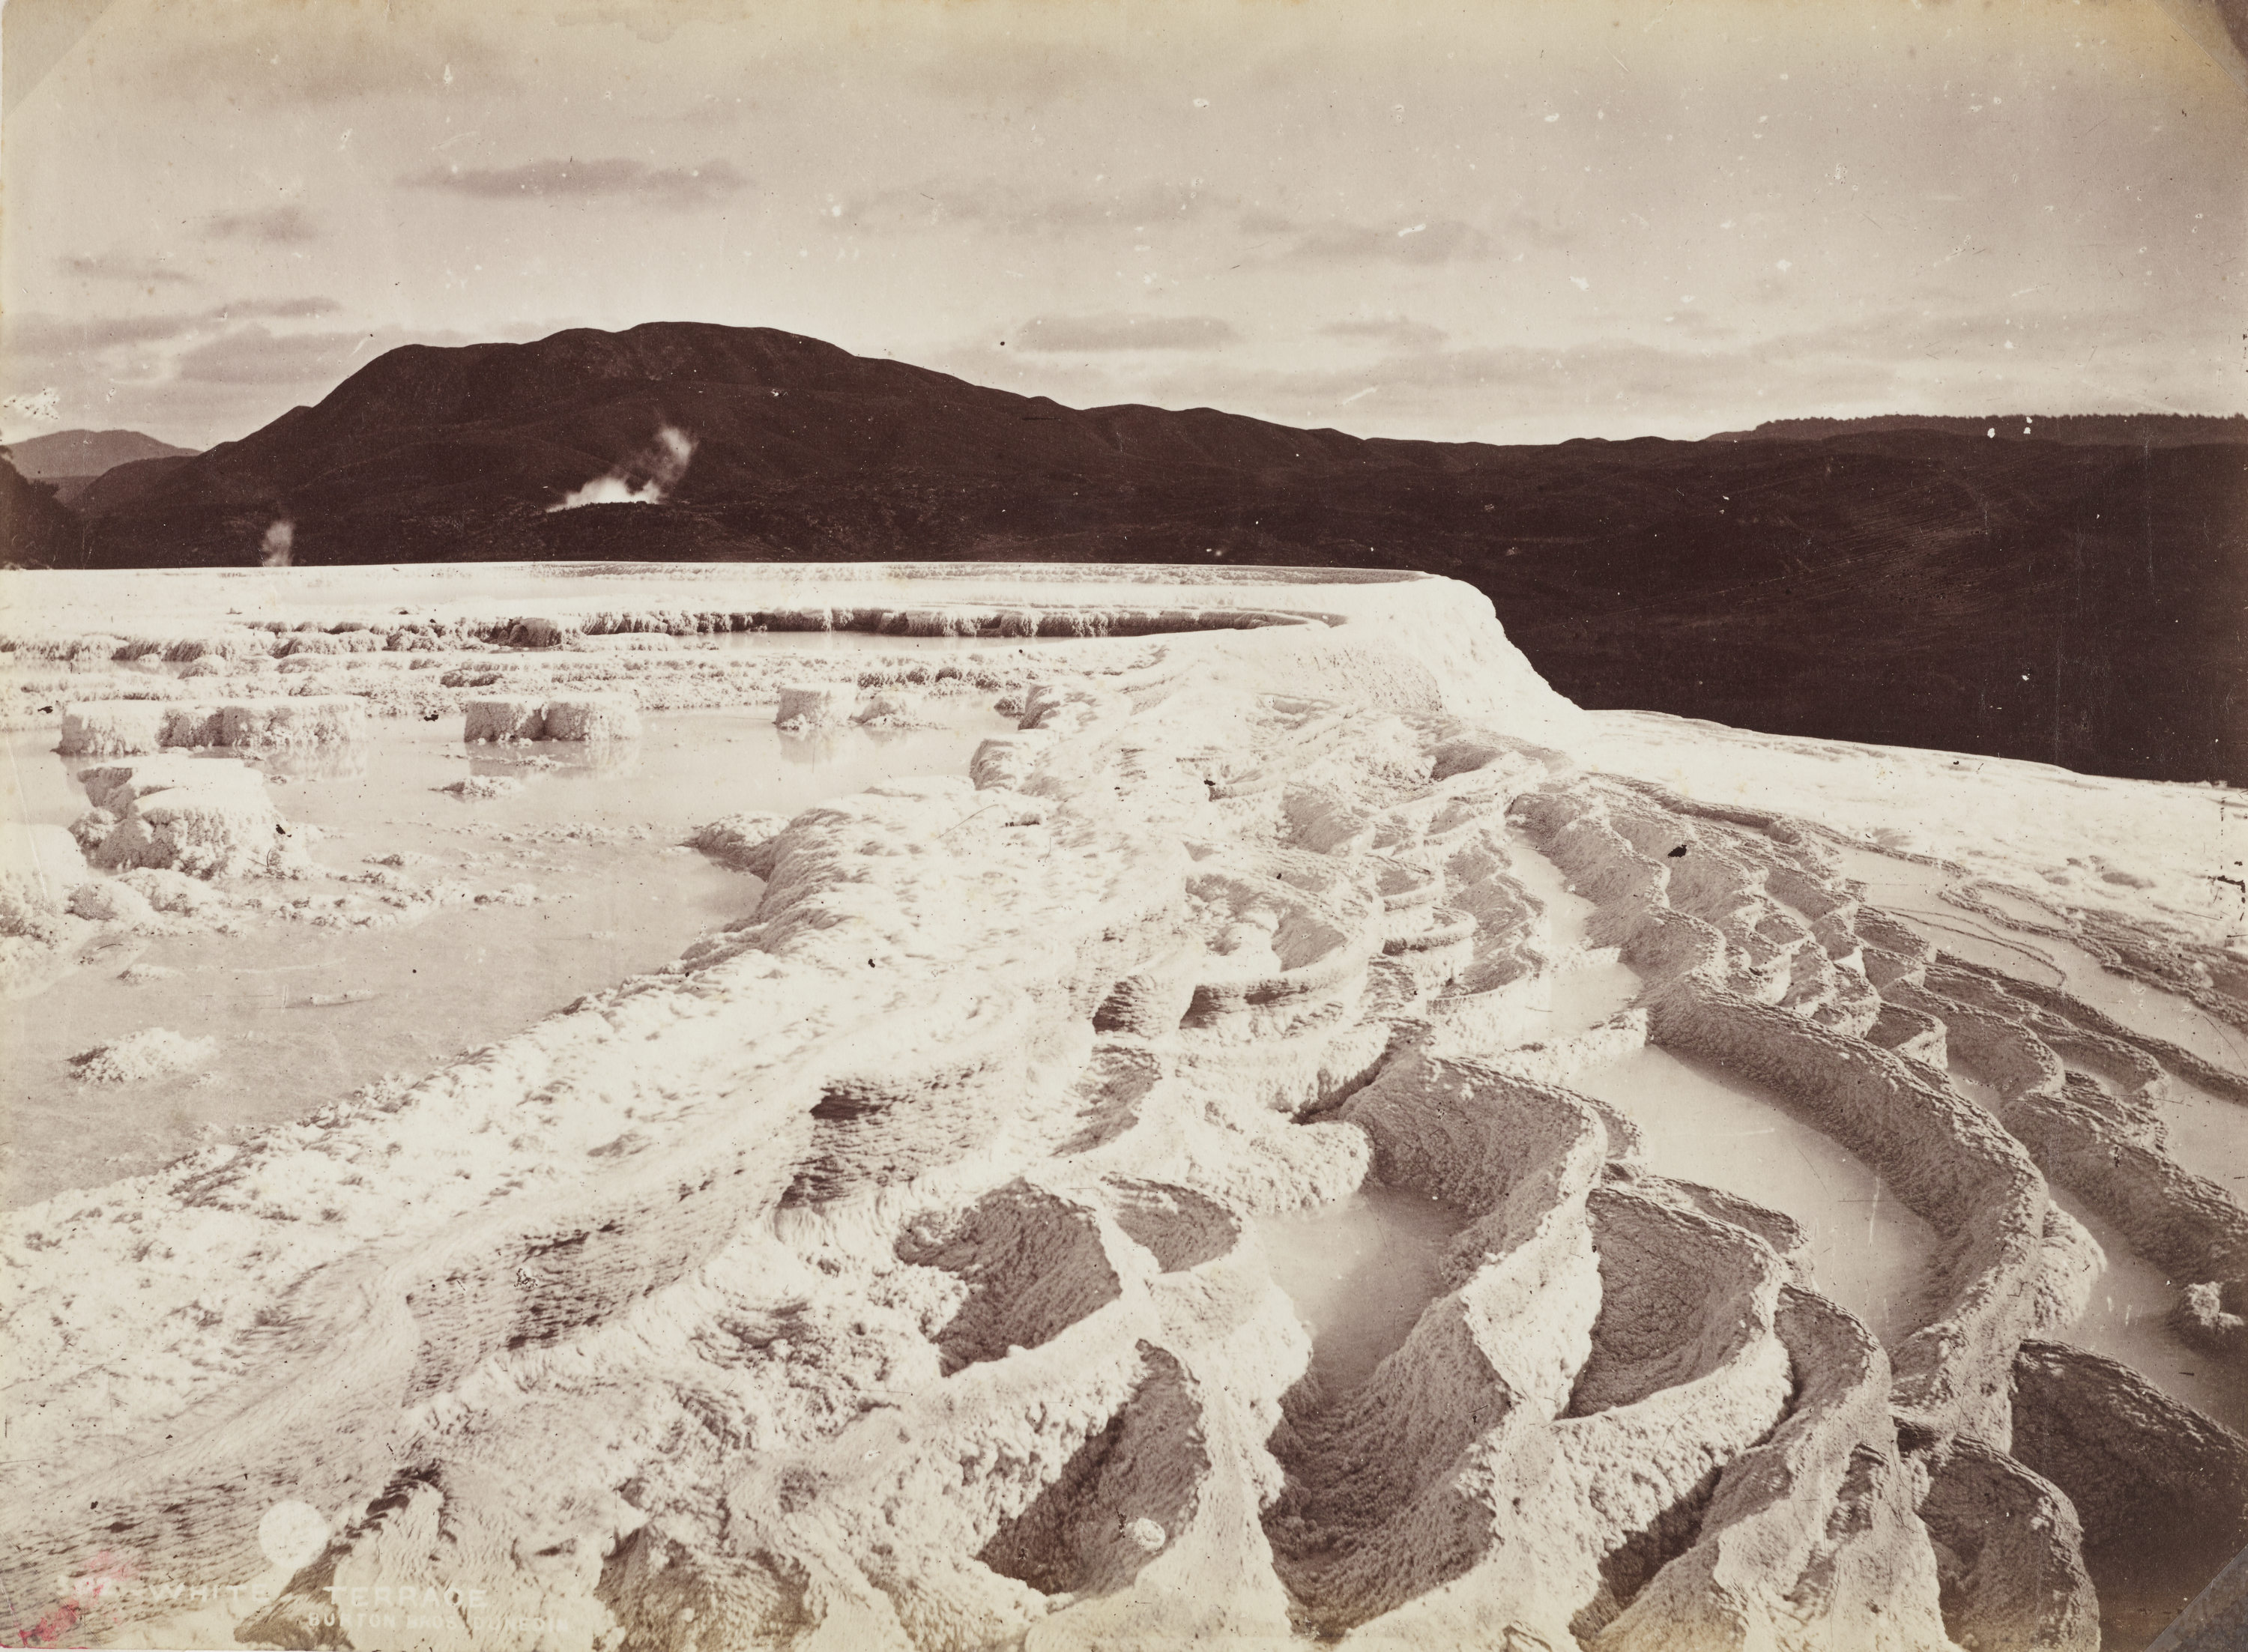 Albumen silver print photograph of the Pink and White Terraces